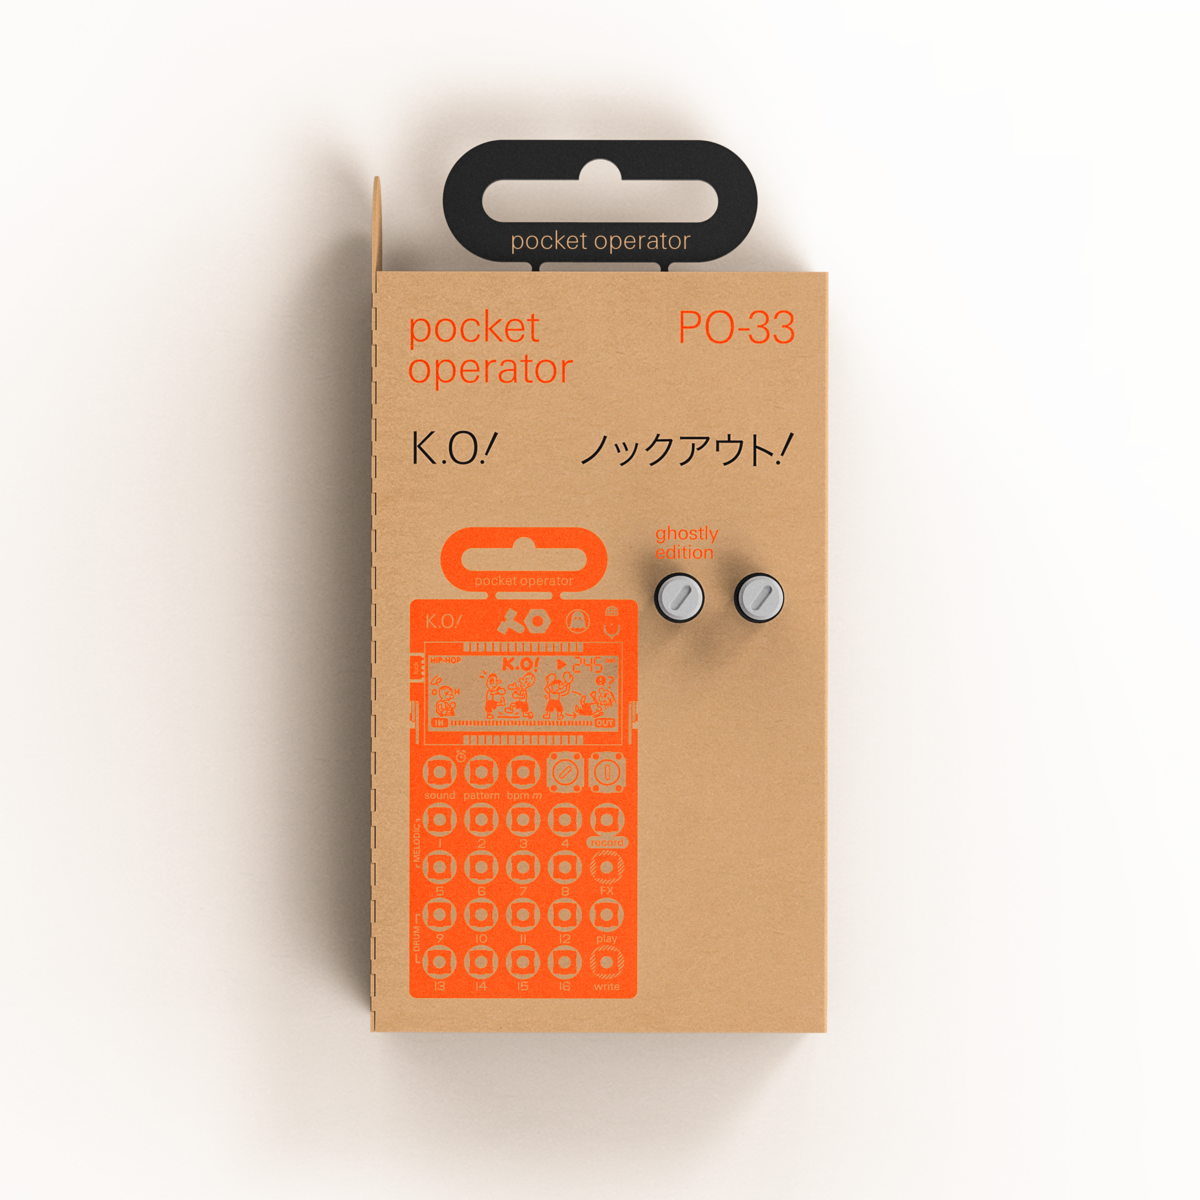 PO-33_ghostly_2048_1200x